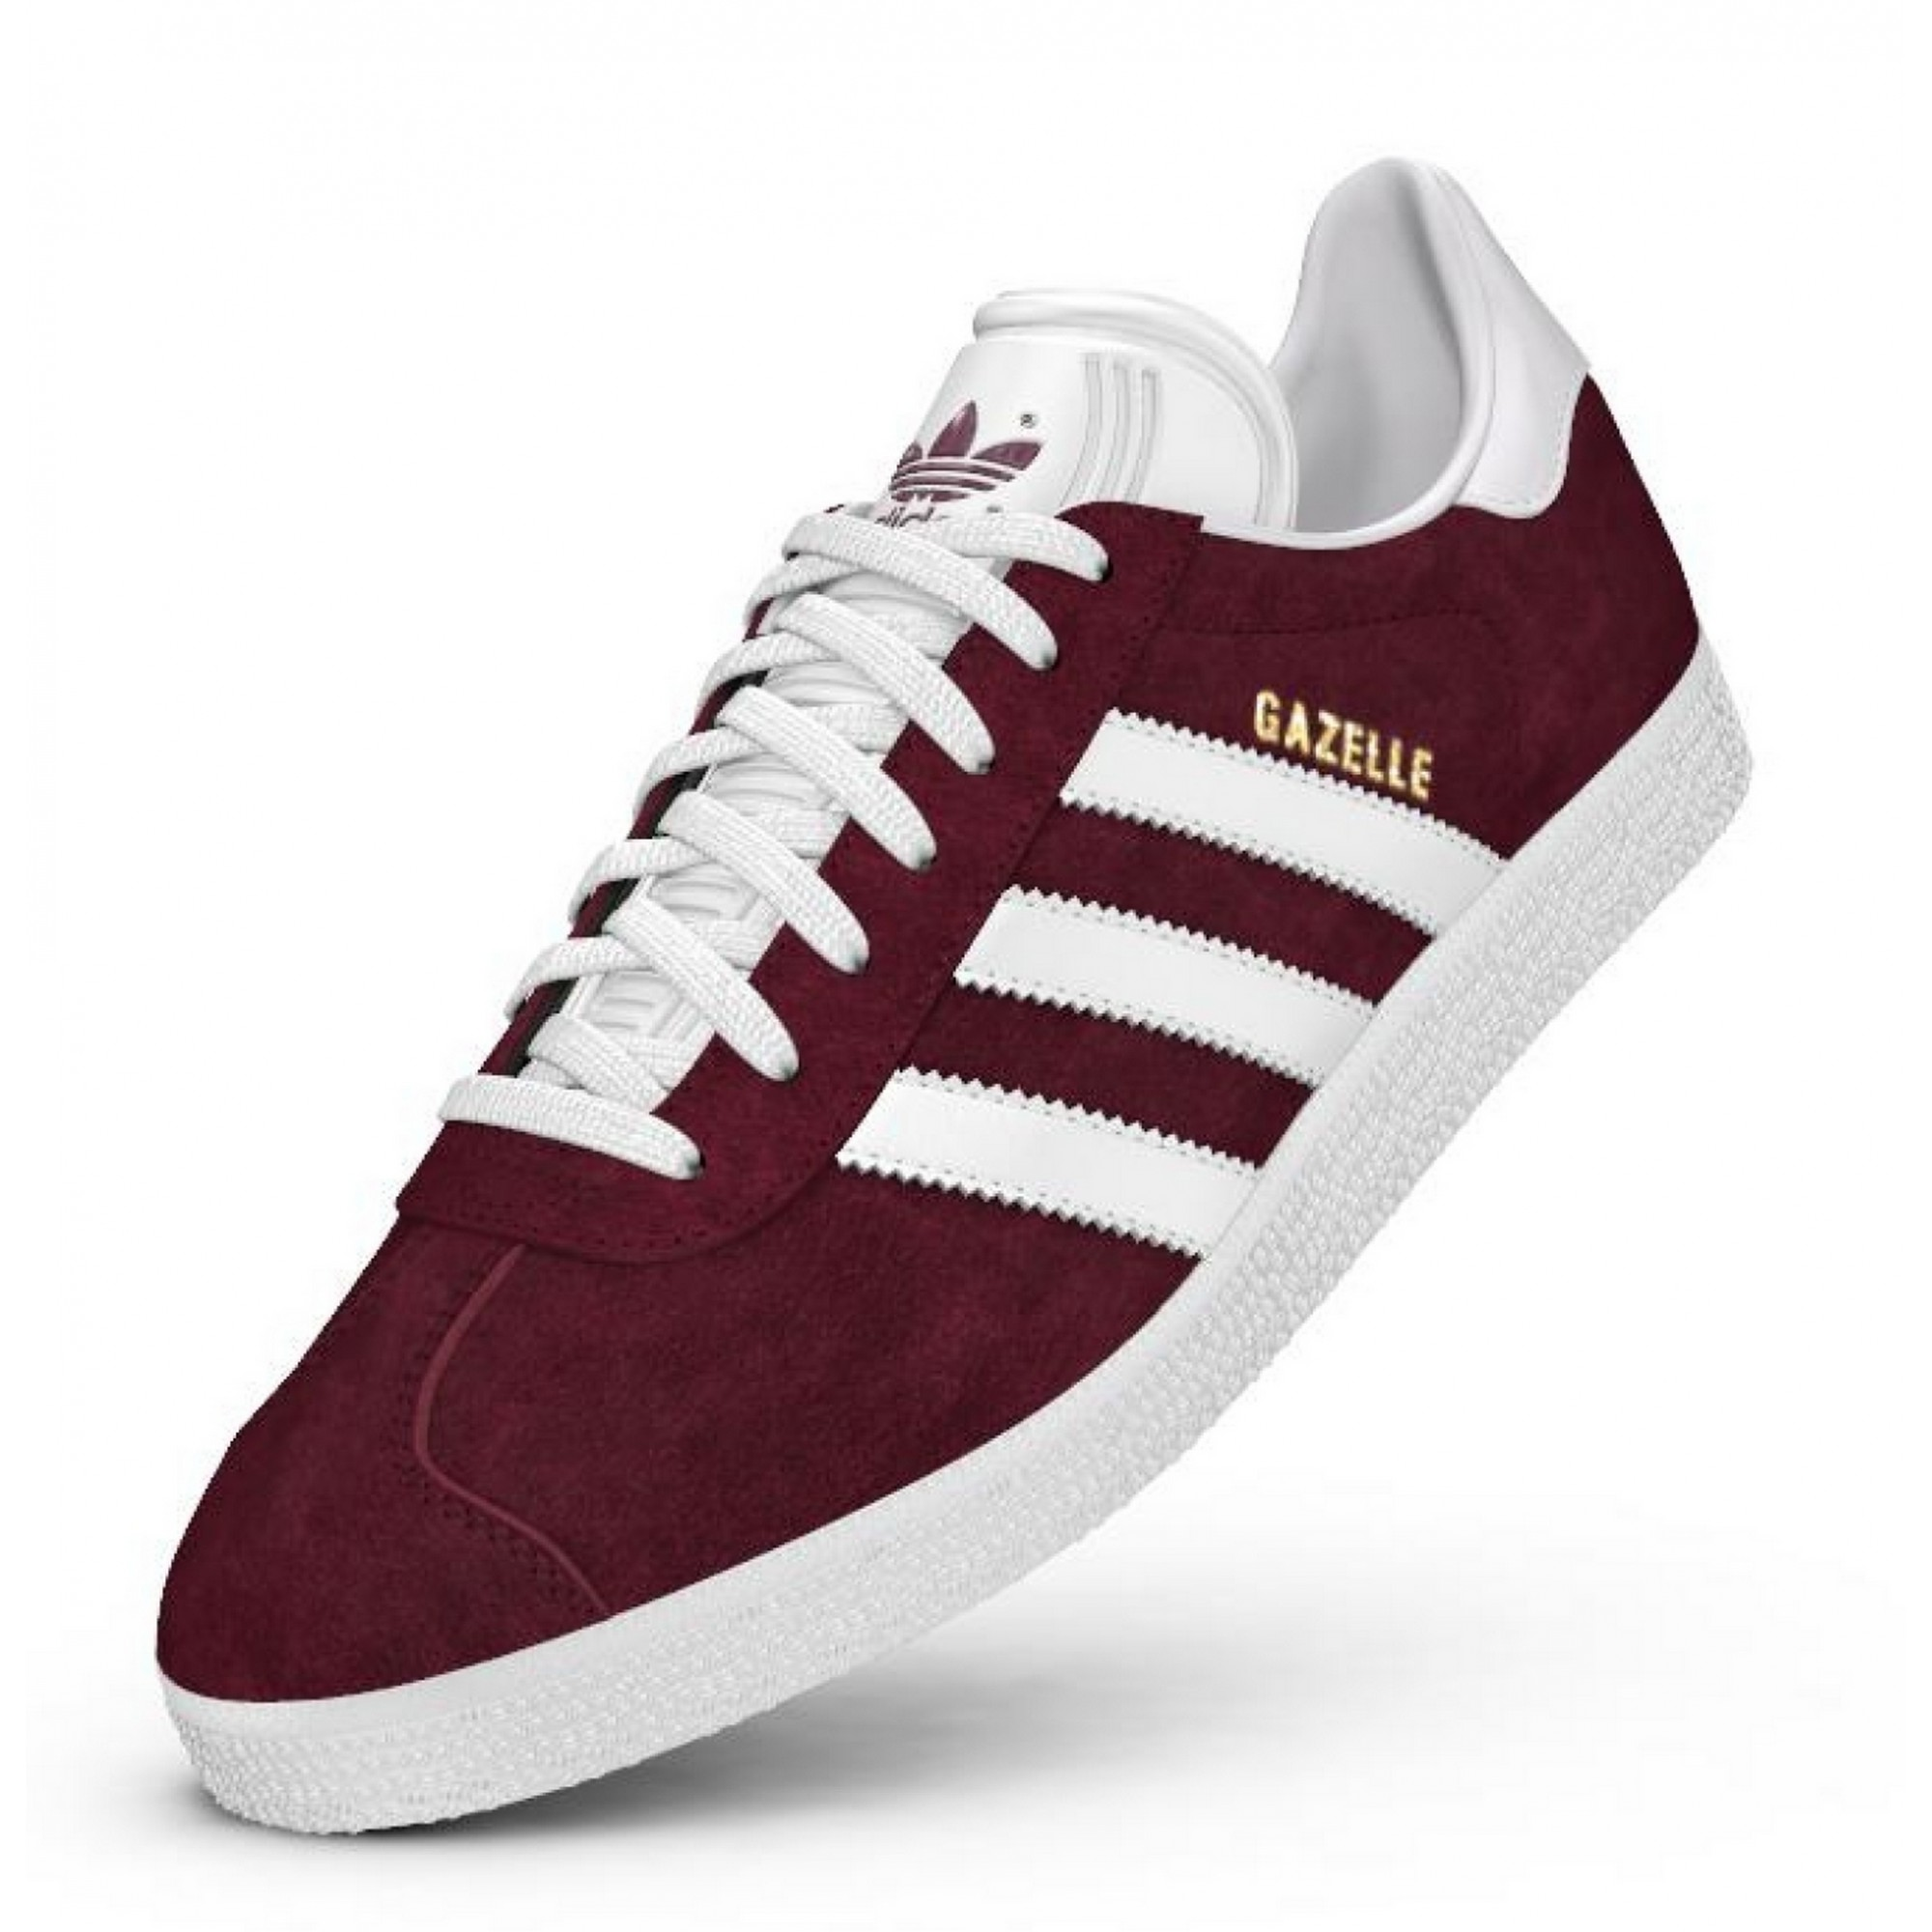 2027036fe8311 Gazelle Adidas Femme Bordeaux Adidas Originals baskets Gazelle Homme  Chaussures